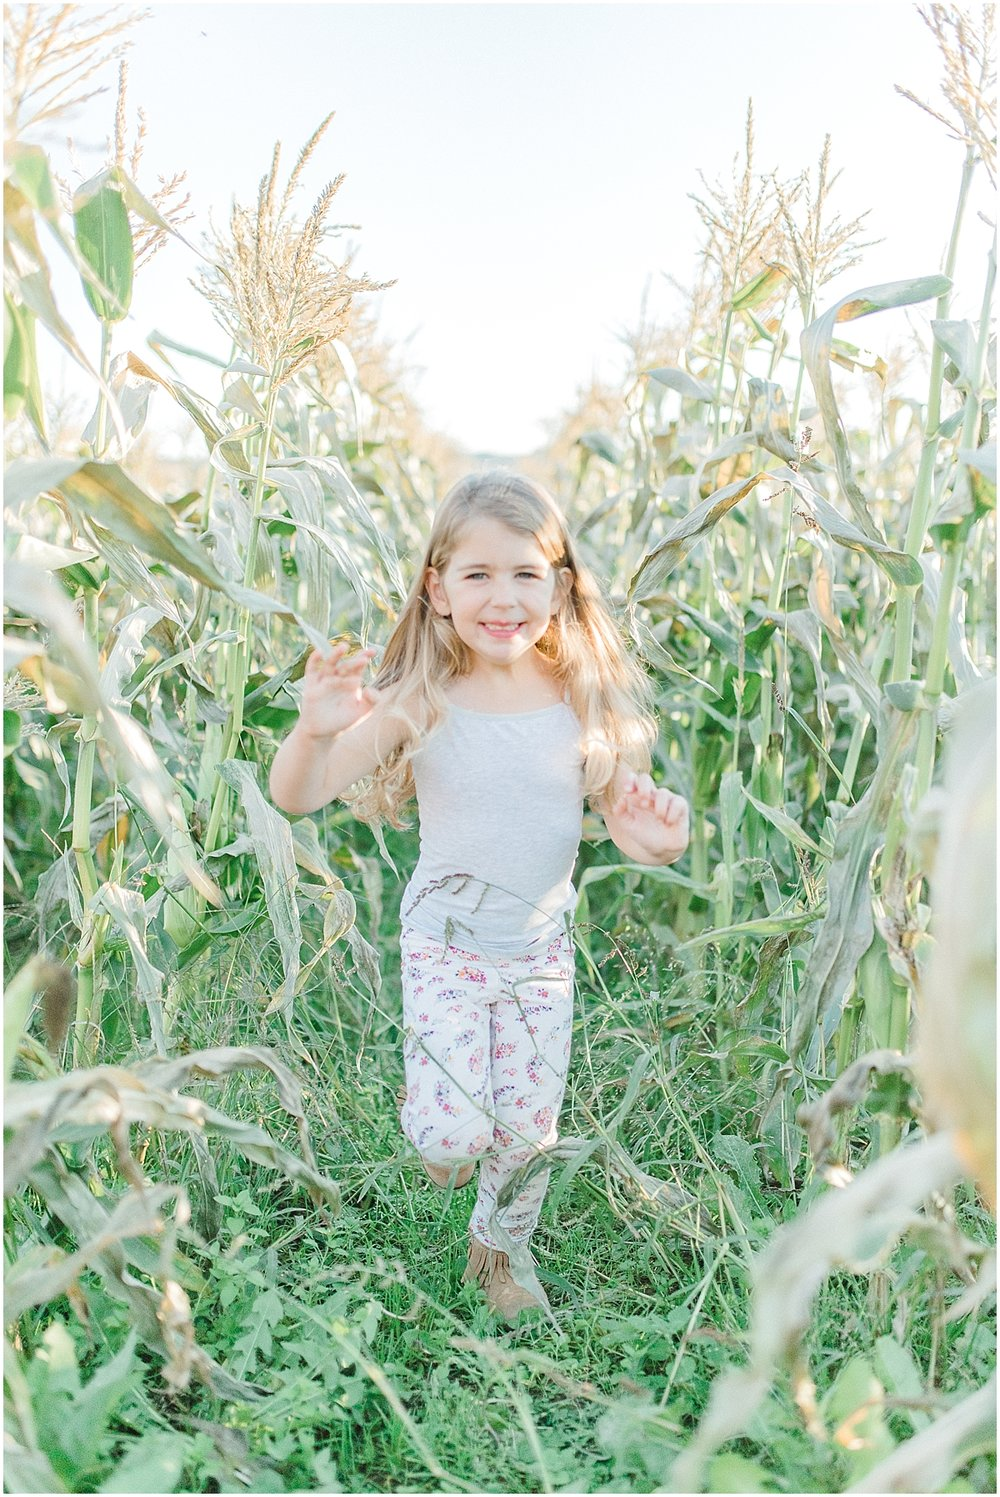 Pumpkin Patch Photo Shoot With Toddler and Mommy | Emma Rose Company Seattle Portland Light and Airy Wedding Photographer | Kindred Presets | Film_0013.jpg